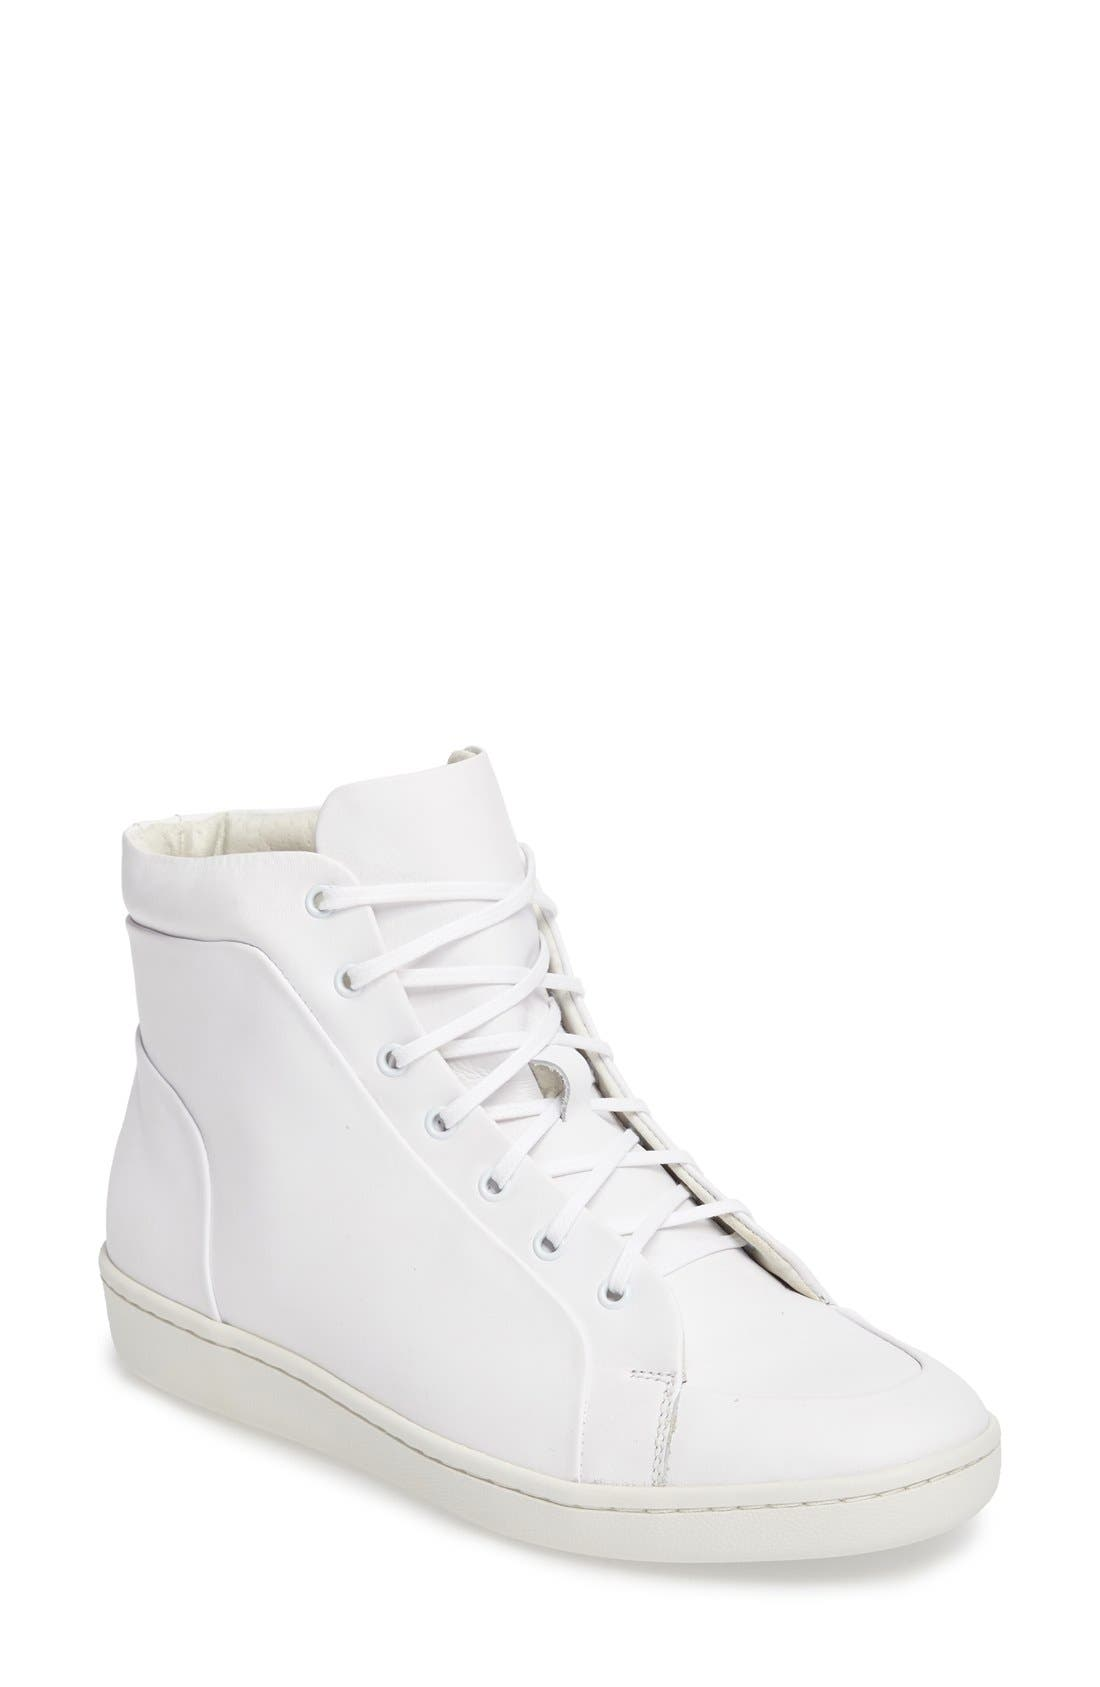 Molly High Top Sneaker,                             Main thumbnail 1, color,                             White Leather